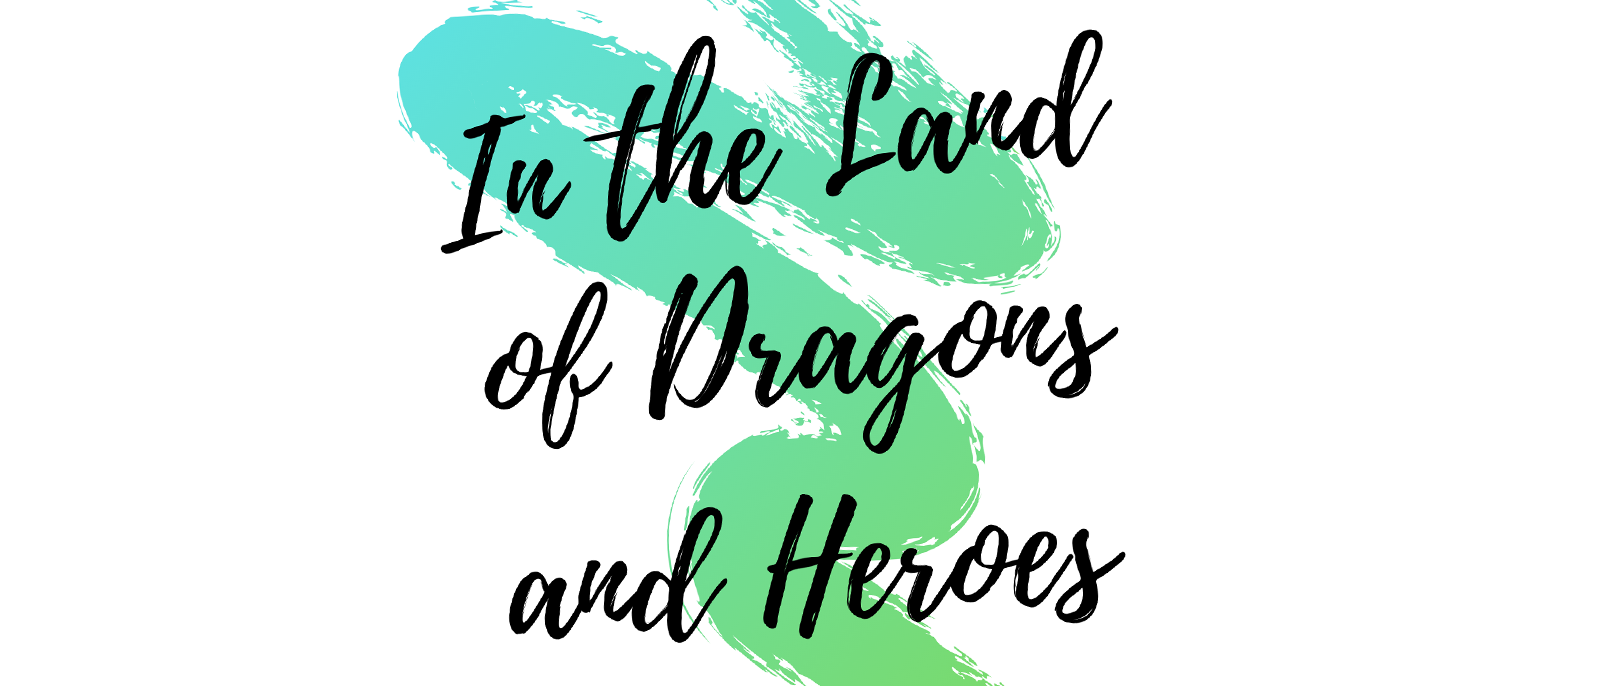 In the Land of Dragons and Heroes